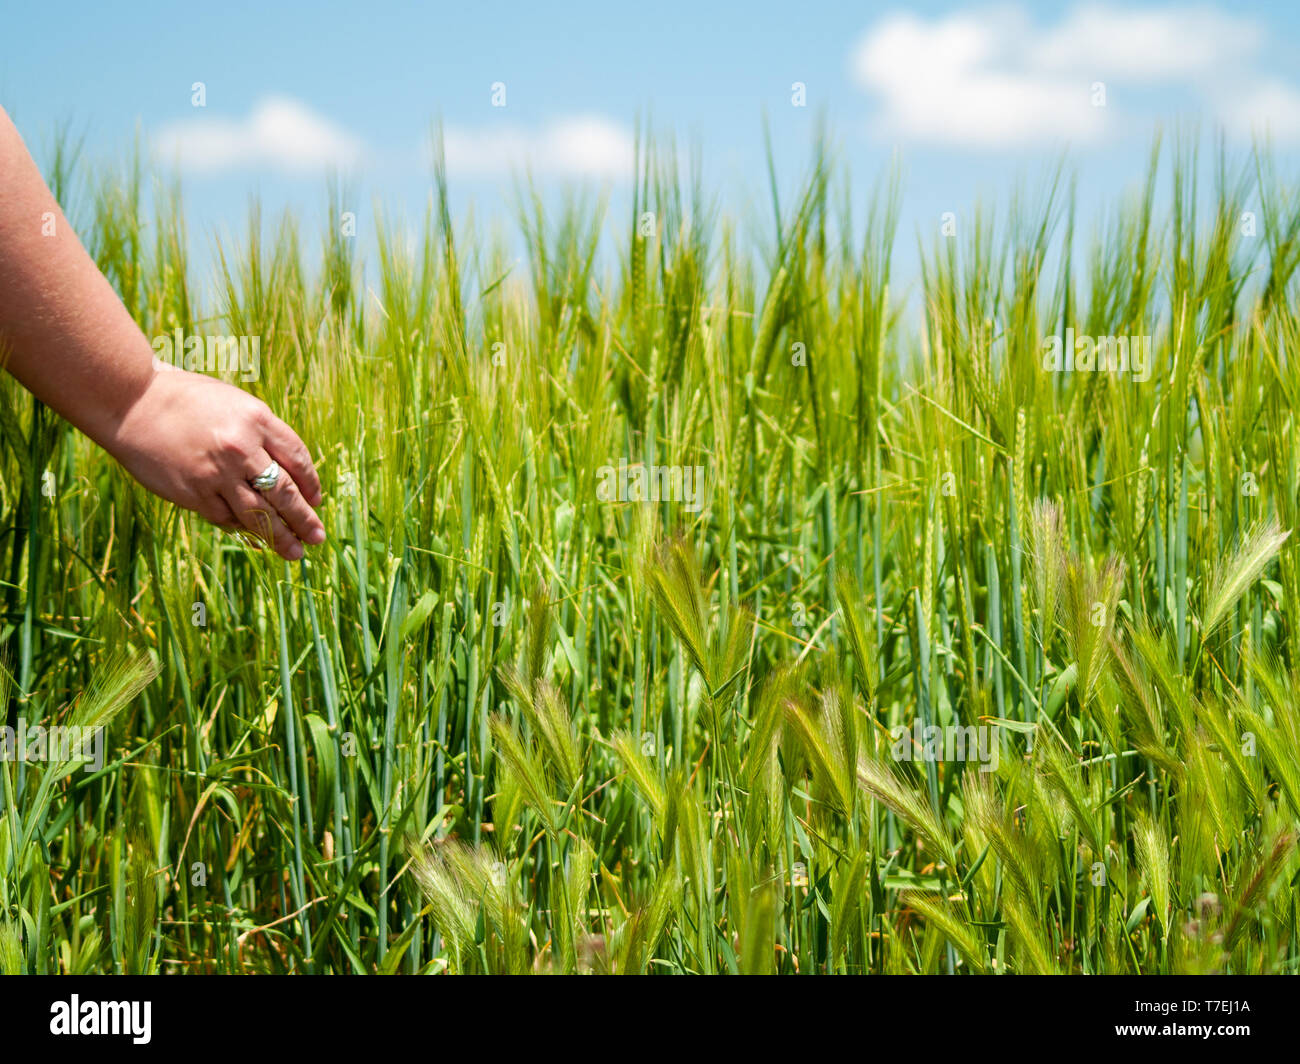 Unrecognizable person playing with his hand the plants in a crop field in spring barley - Stock Image